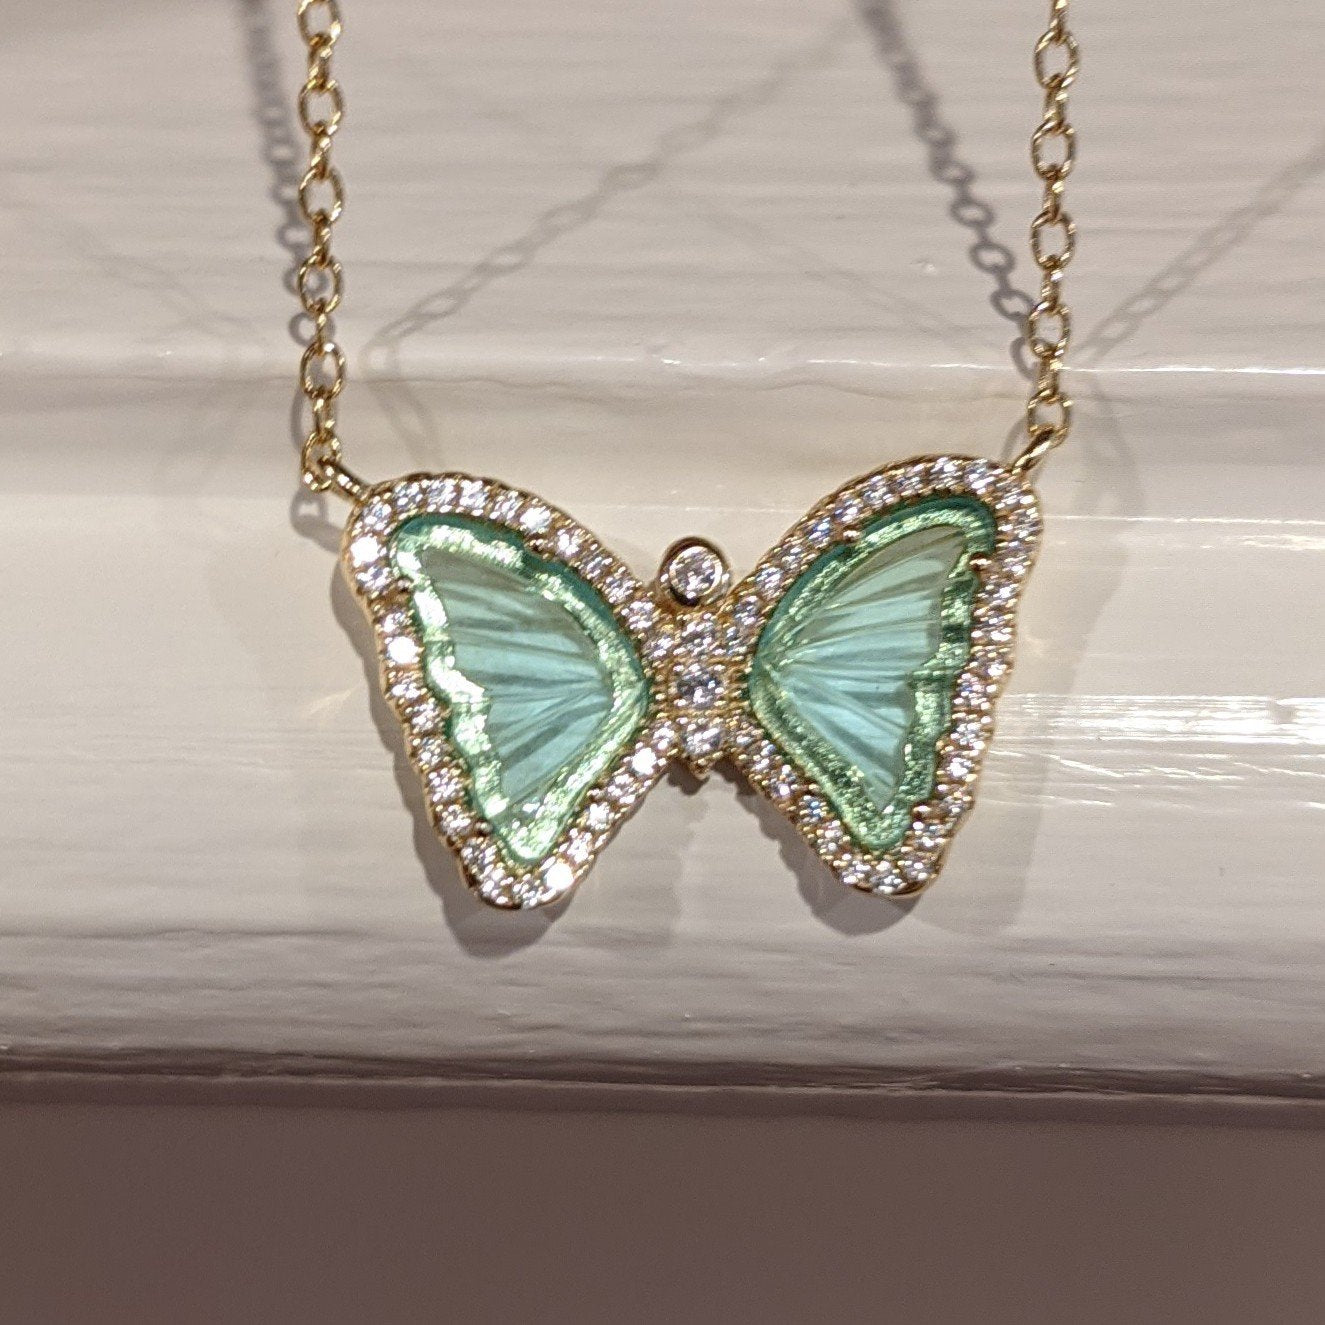 Mini gemstone butterfly necklace in aqua green and yellow gold